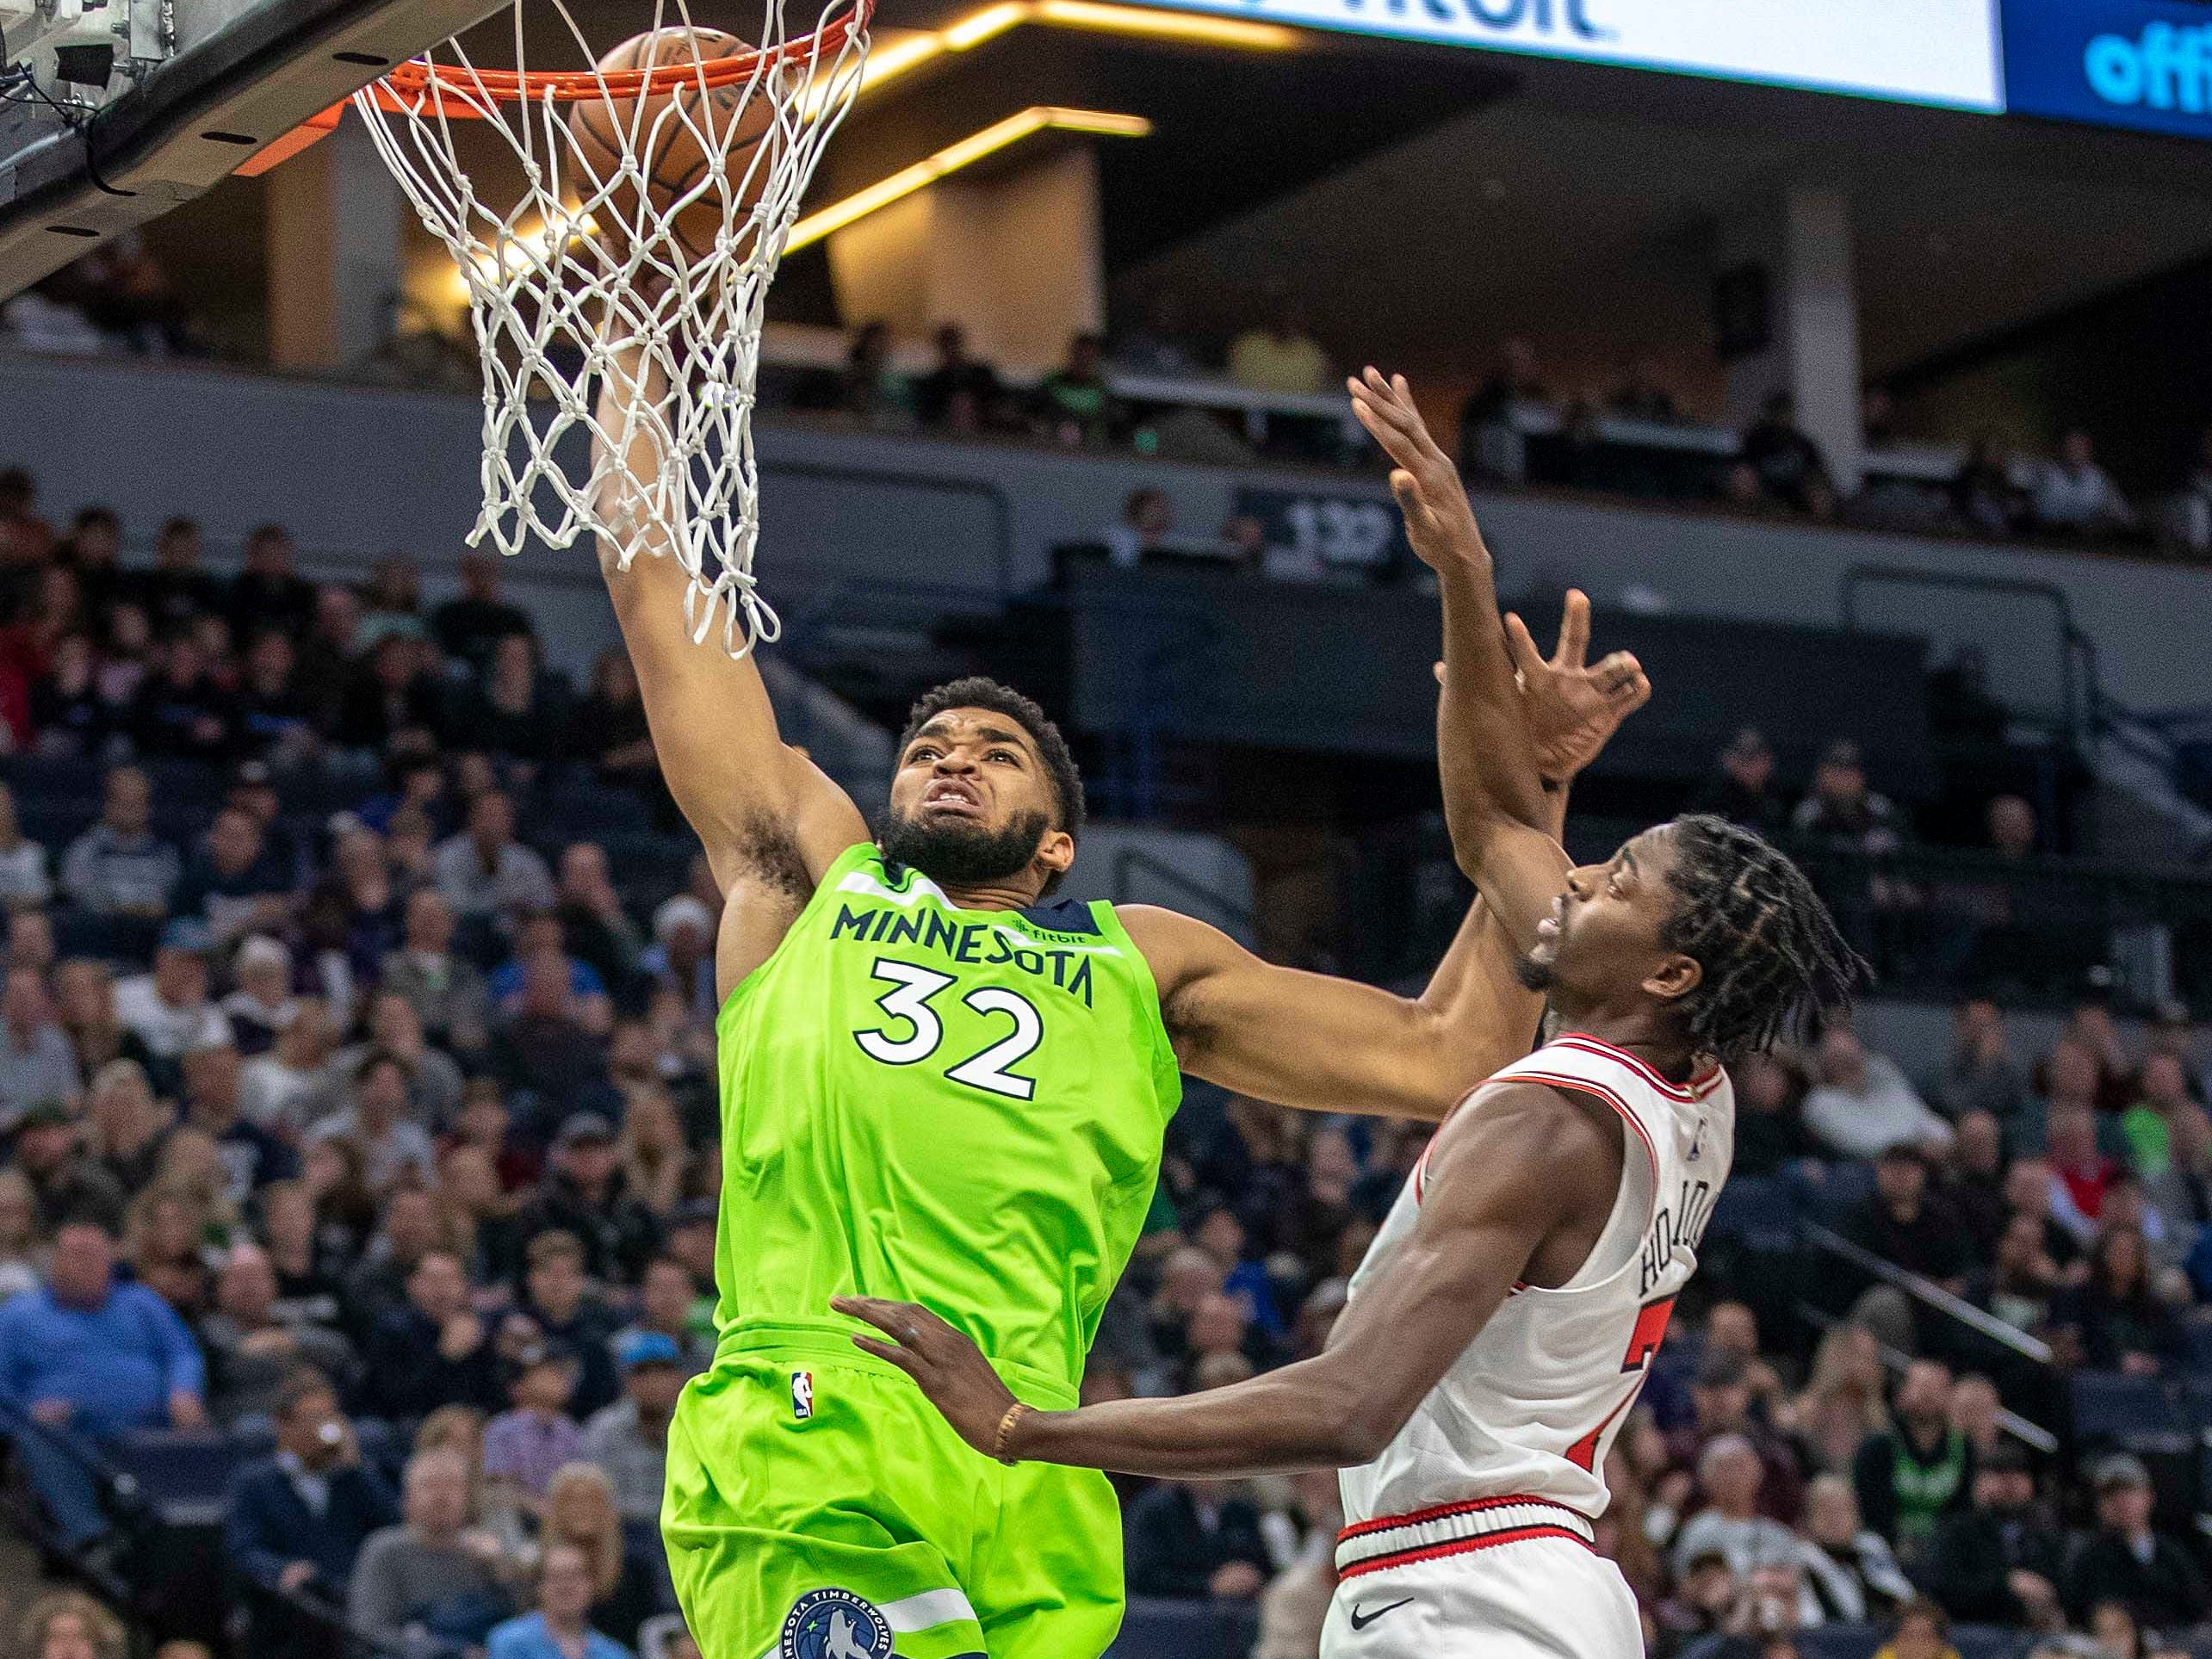 Nov. 24: Timberwolves center Karl-Anthony Towns (32) rises up for a one-handed slam over Bulls defender Justin Holiday (7).